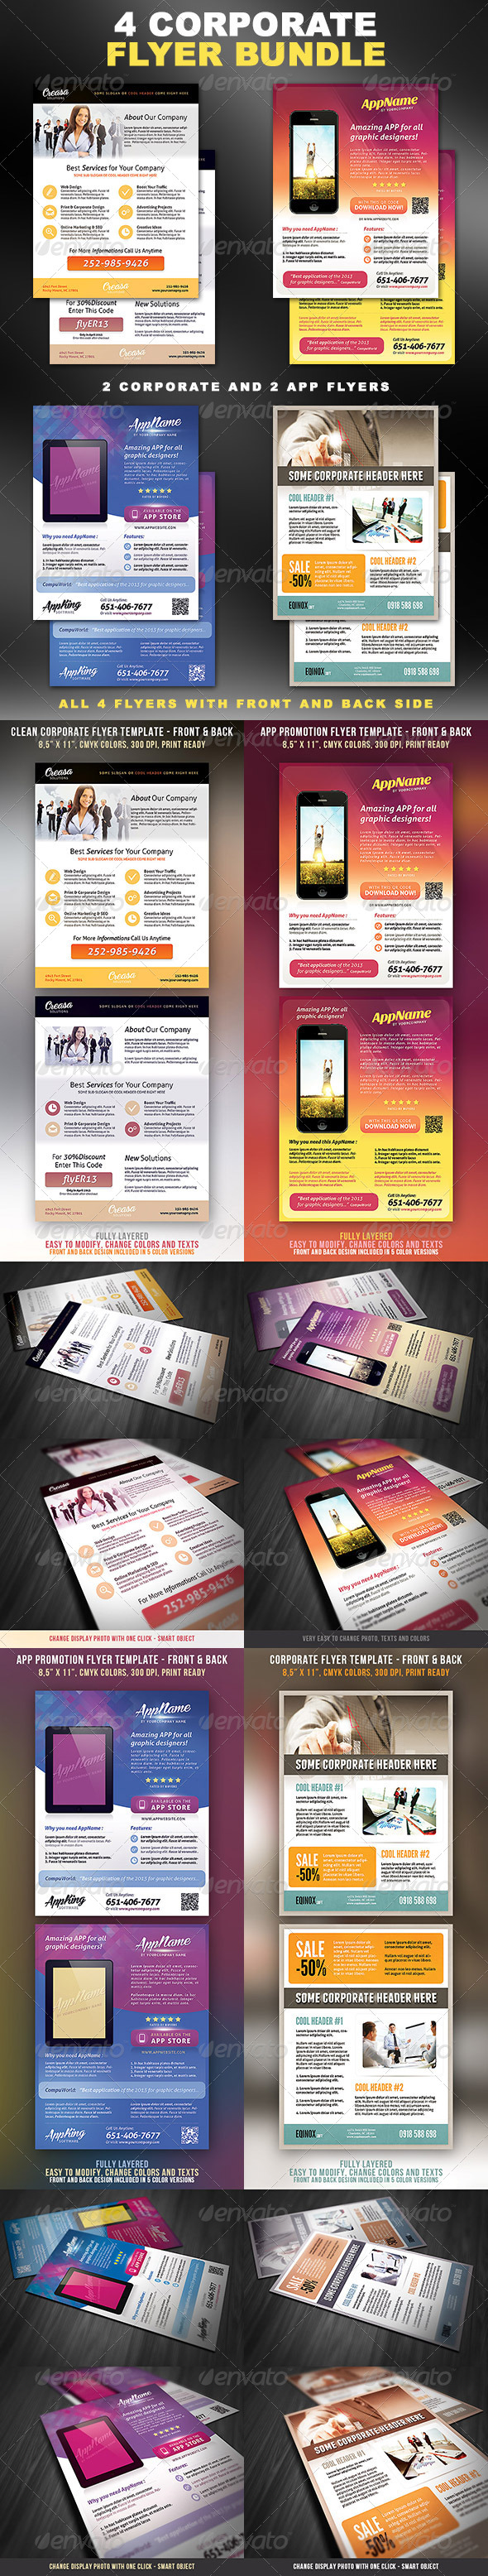 Corporate Flyers Bundle - 4 in 1 - Corporate Flyers